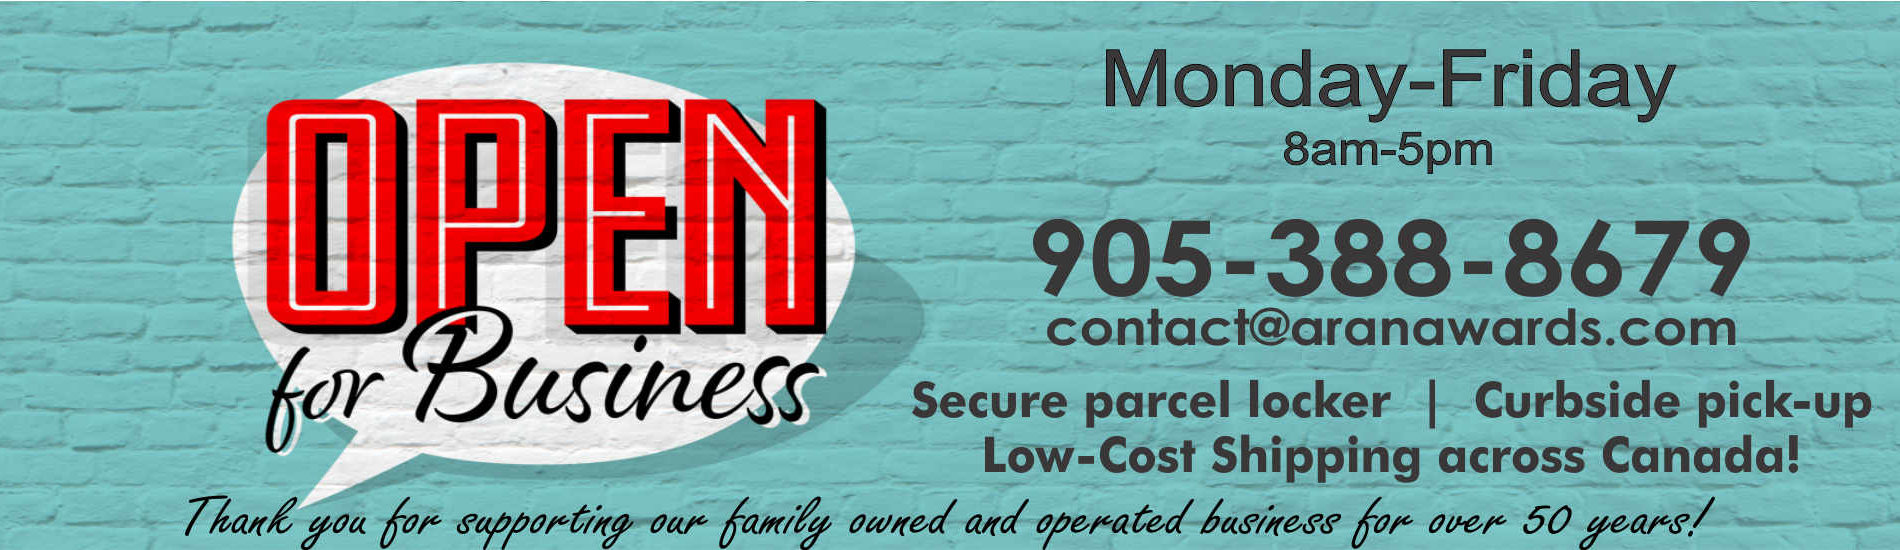 April 2021, Aran Awards & Engraving is open for business with curbside pickup, deliver and a secure parcel locker